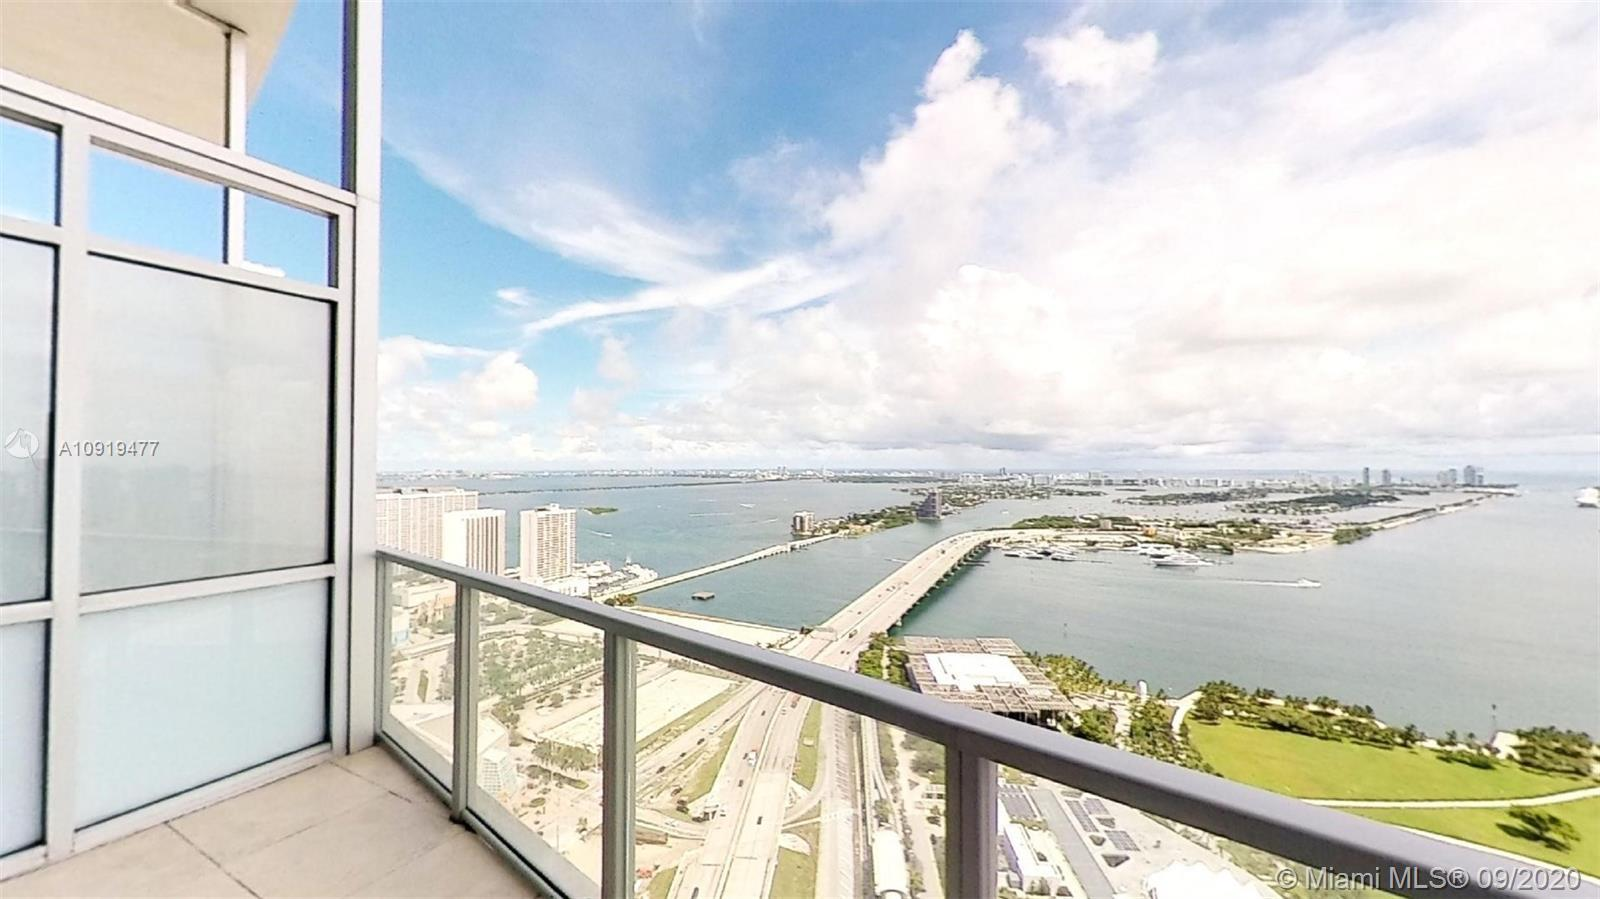 BEST VIEWS IN MIAMI. WALKING DISTANCE FROM AMERICAN AIRLINE AREA. Close to all main highways 395, I-